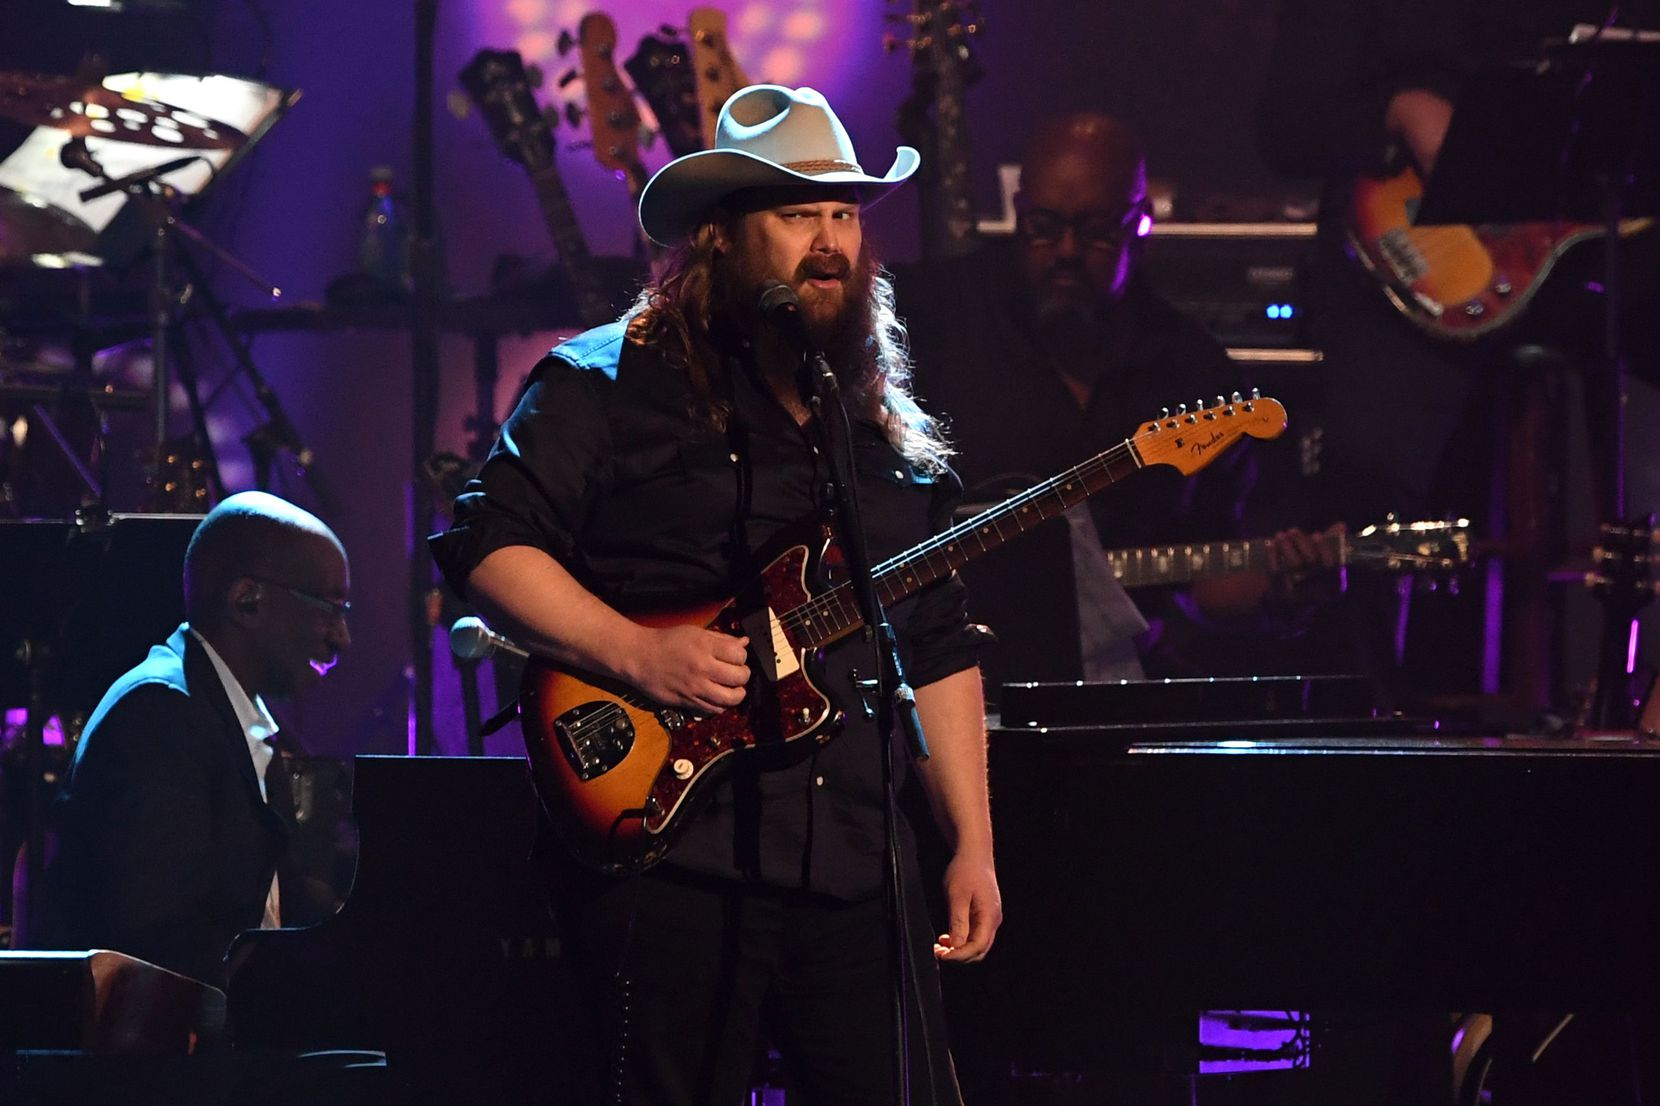 Chris Stapleton performed onstage at the 2019 MusiCares Person of the Year gala at the Los Angeles Convention Center on Feb. 8, 2019. The 2019 MusiCares honored U.S. singer-songwriter Dolly Parton as the Person Of The Year.